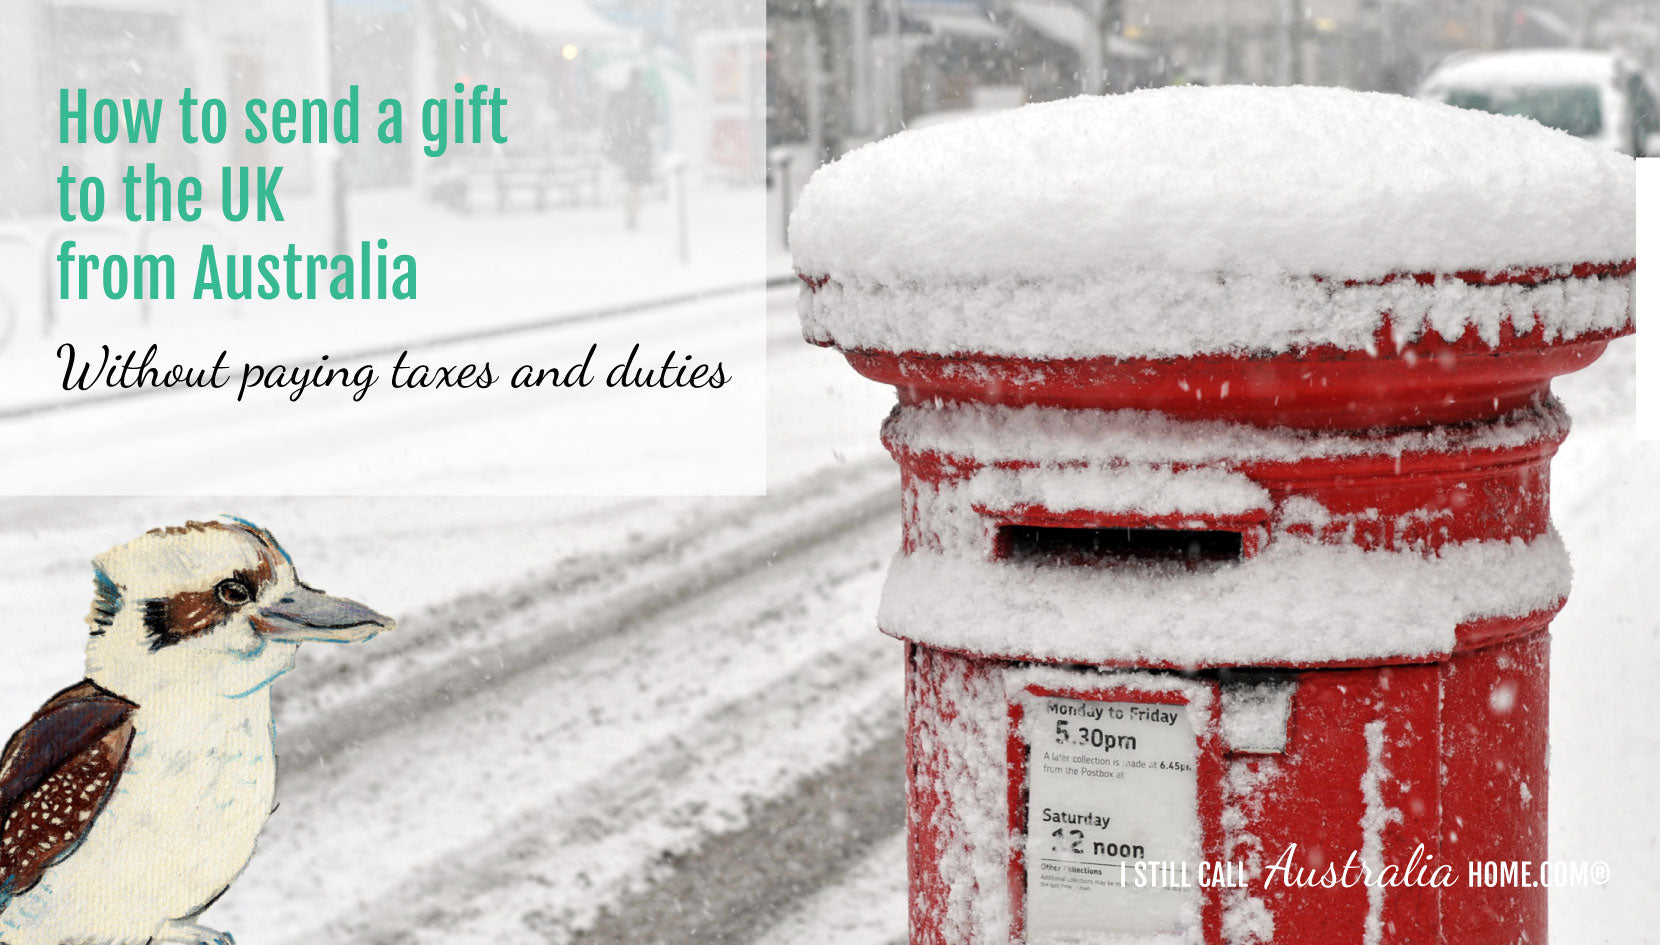 HOW TO SEND A GIFT TO THE UK FROM AUSTRALIA WITHOUT PAYING TAXES AND DUTIES